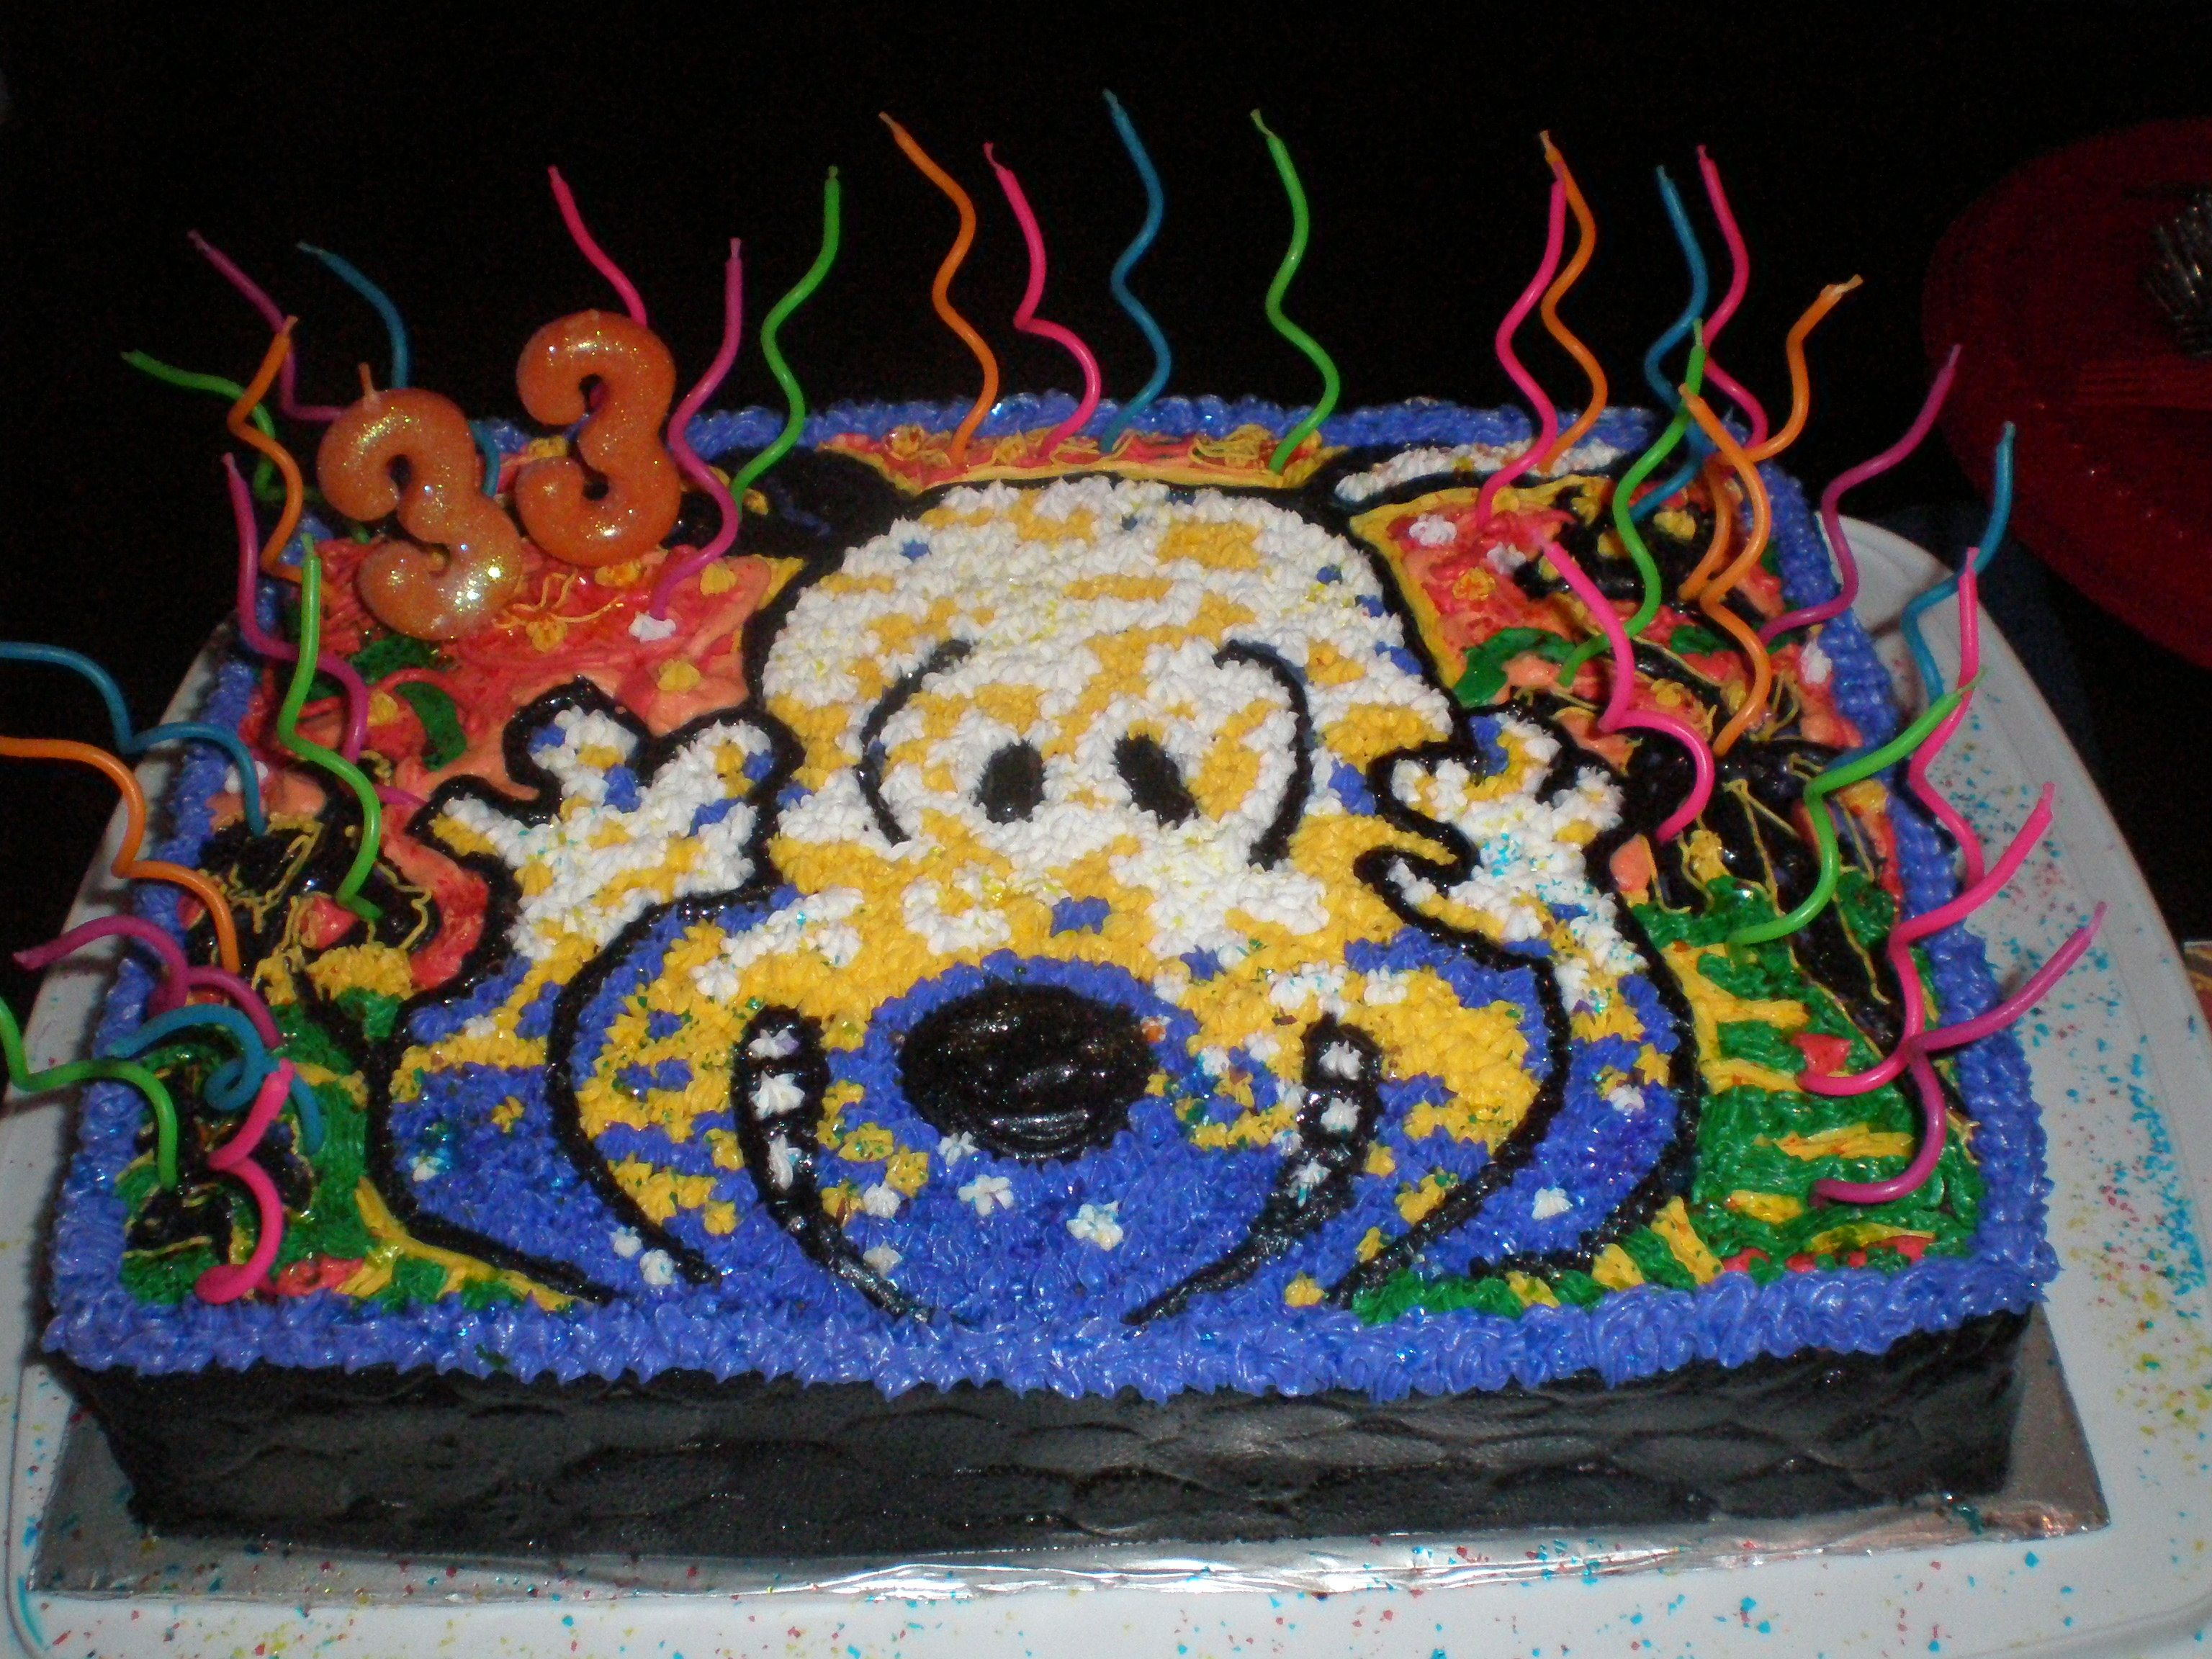 Snoopy Cake!!! Based on one of my favorite paintings by Tom Everhart